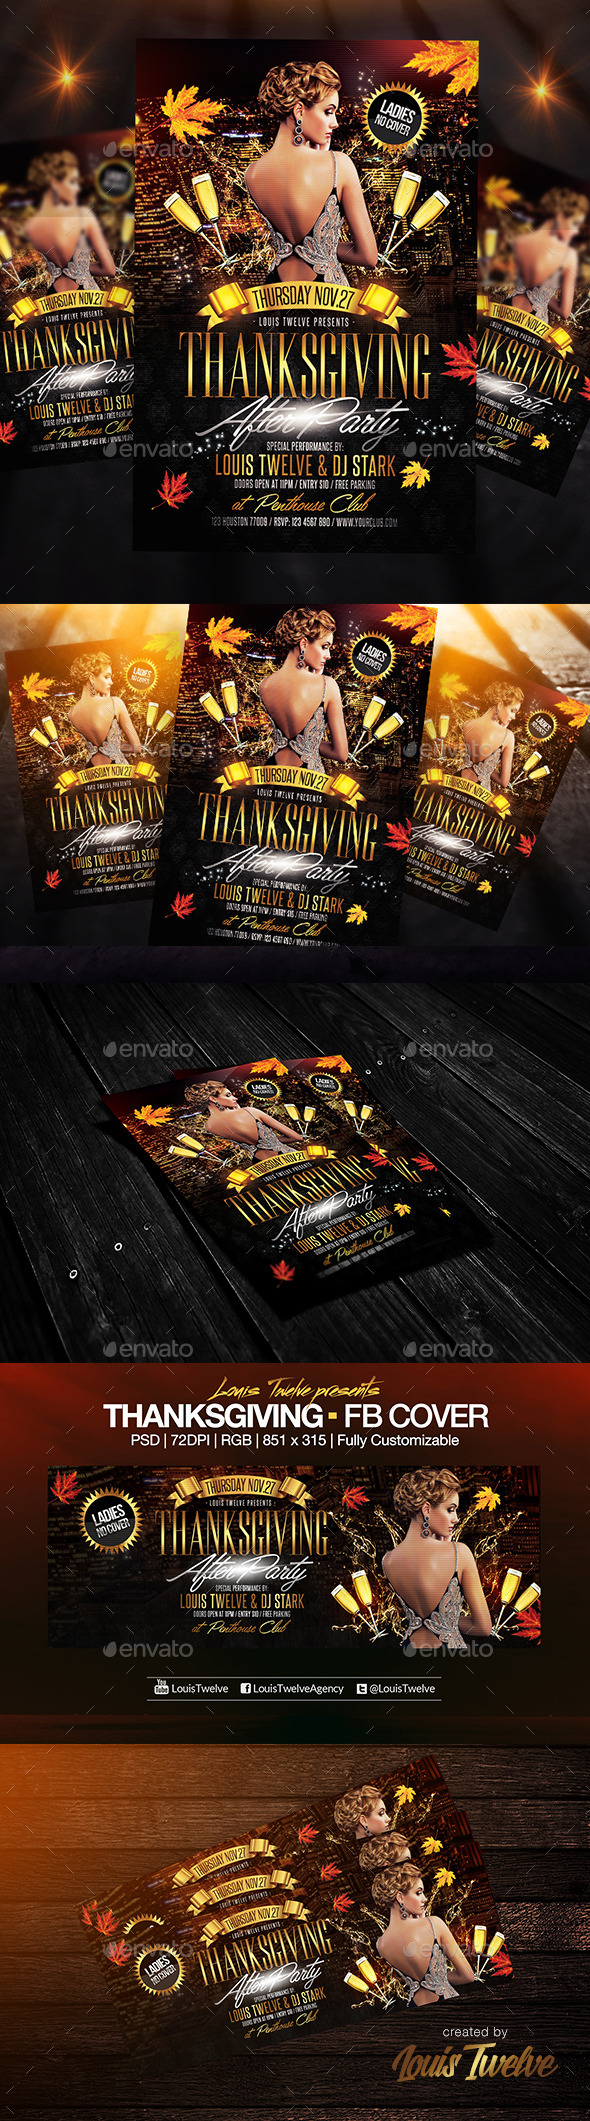 GraphicRiver Thanksgiving After Party Flyer & FB Cover 8915442